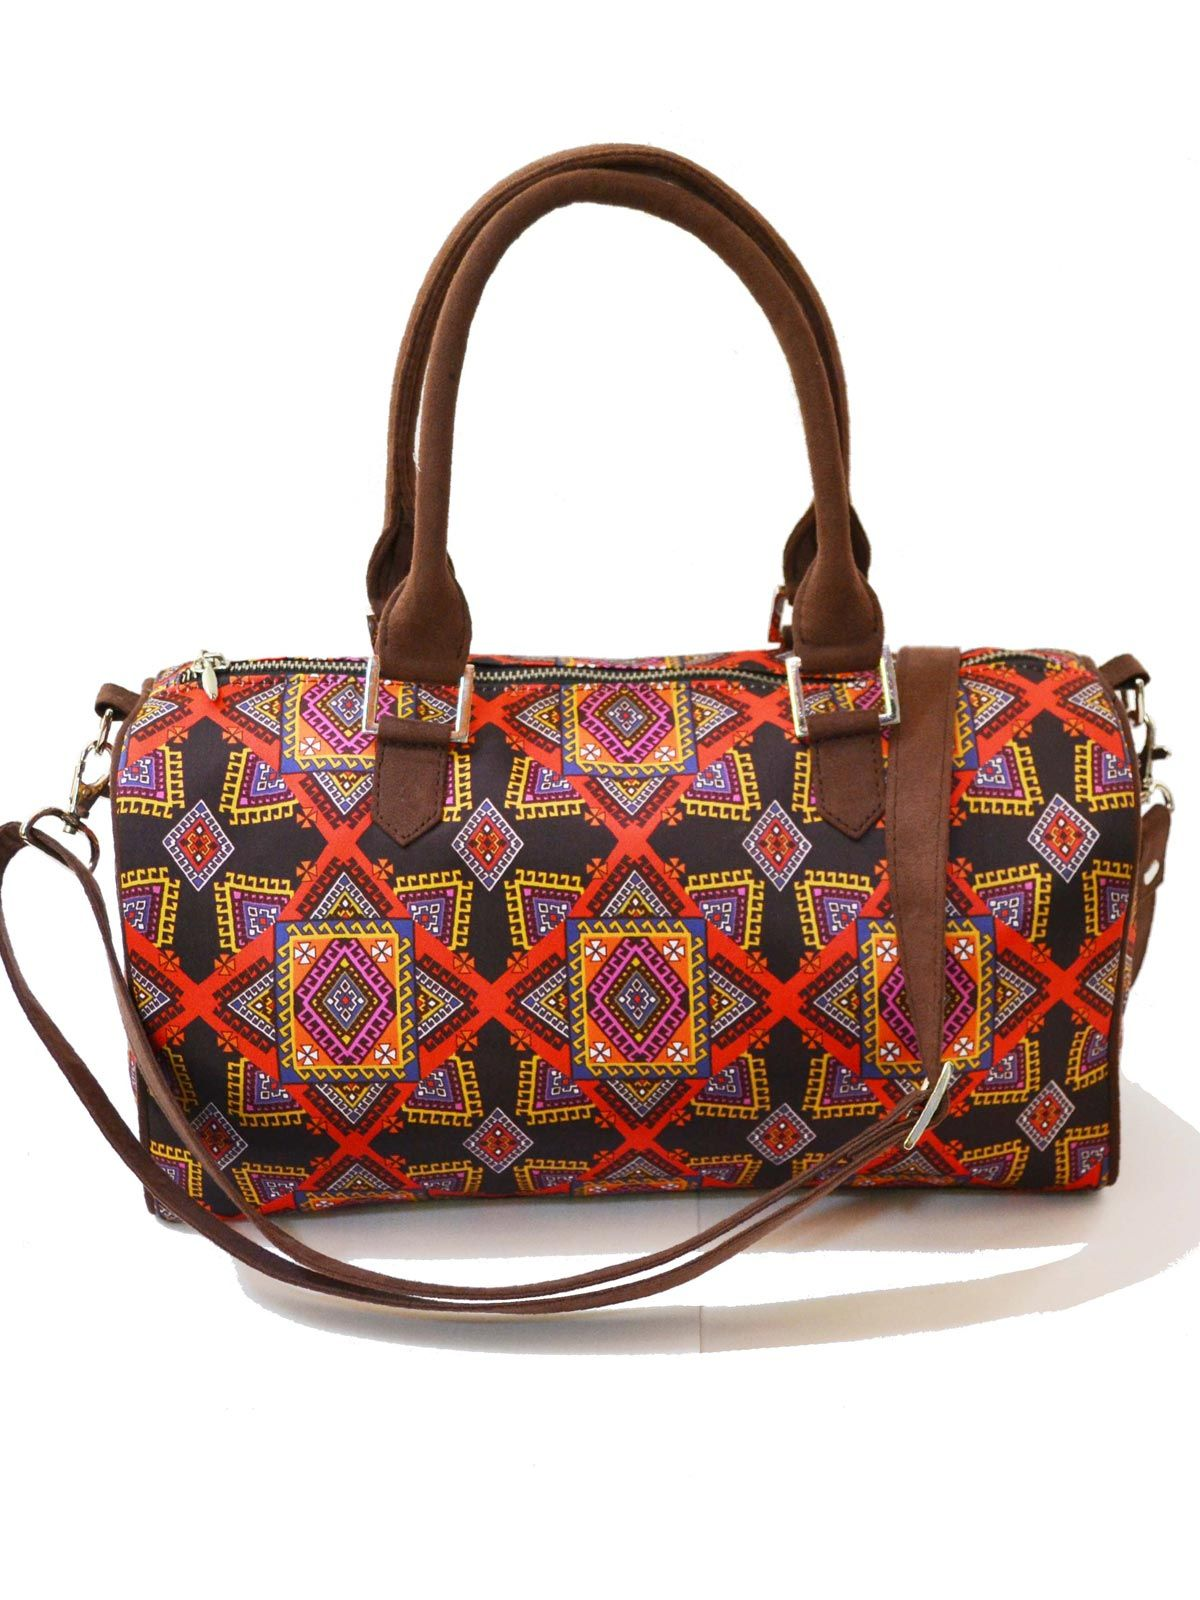 Graphic Printed duffle bag